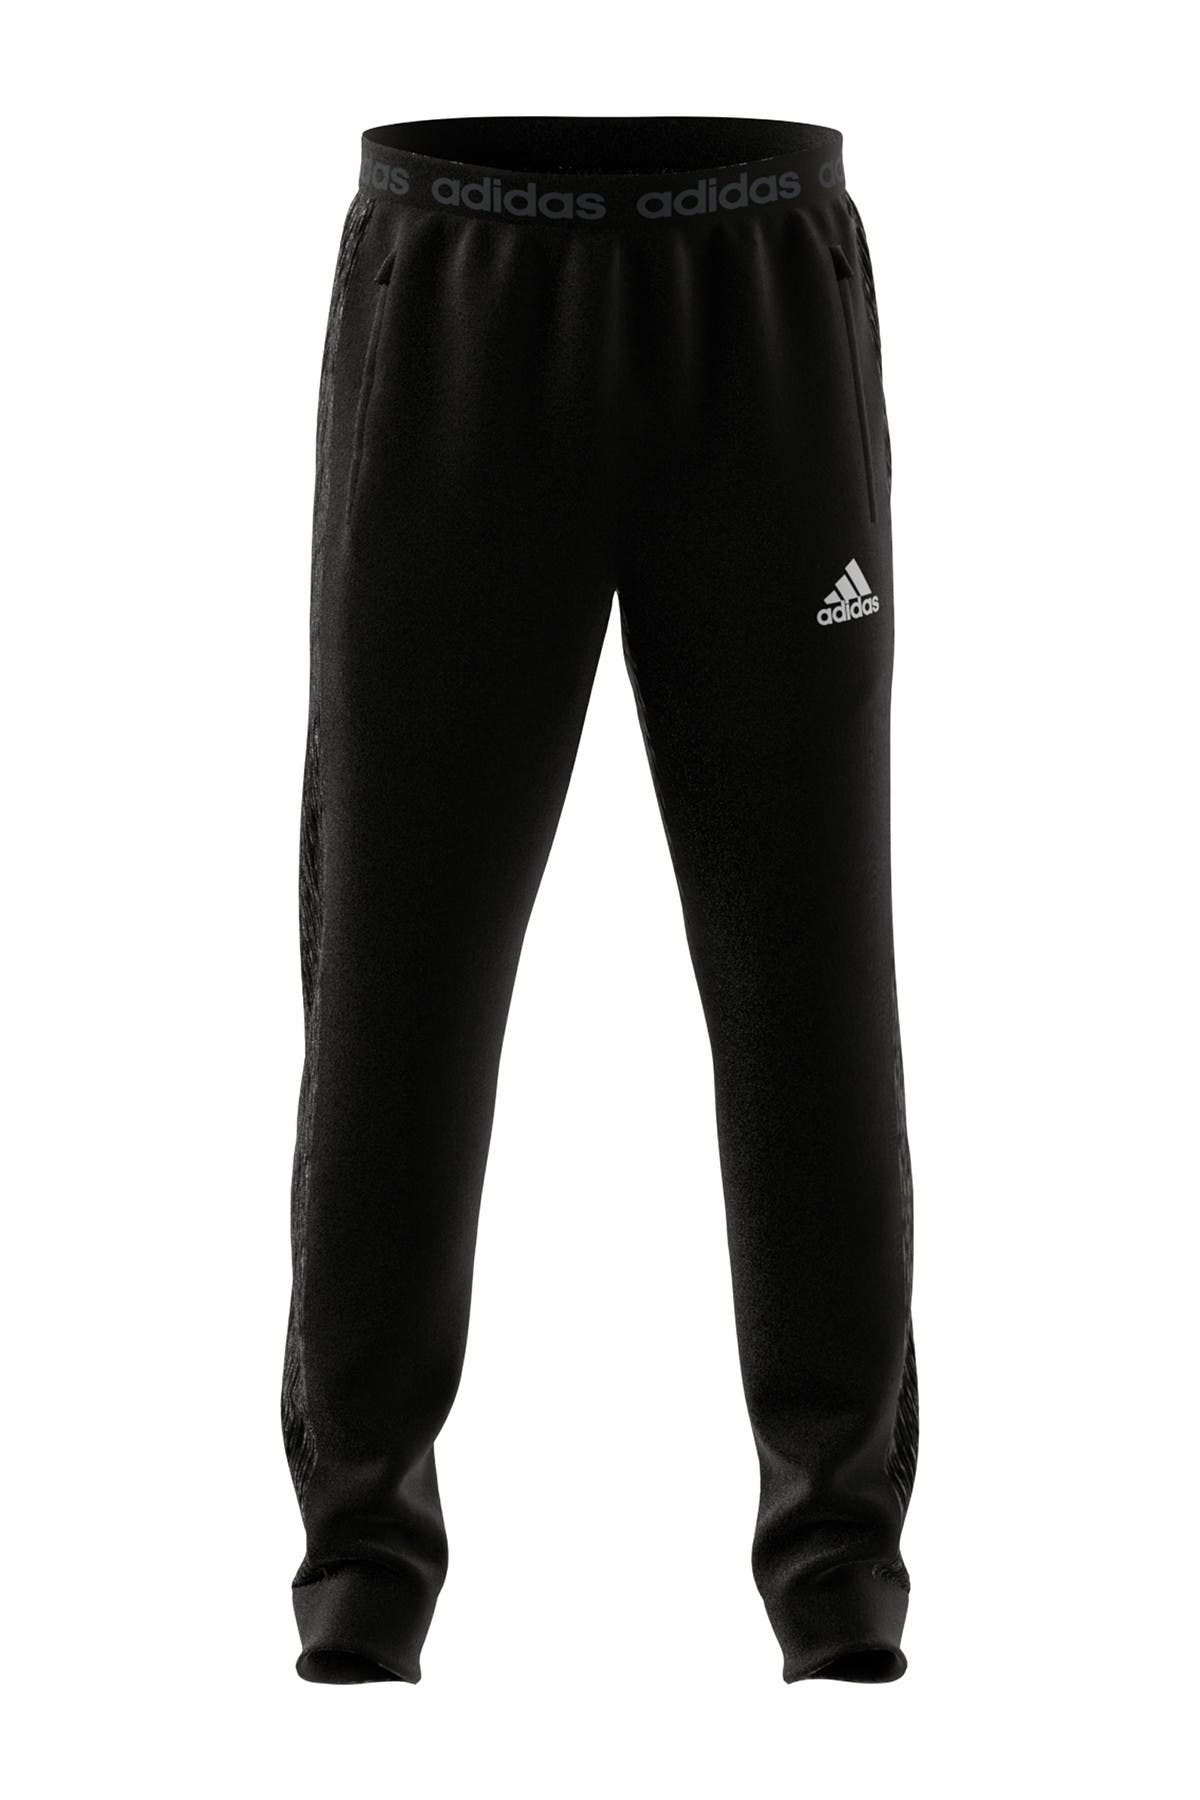 Image of adidas Active Joggers